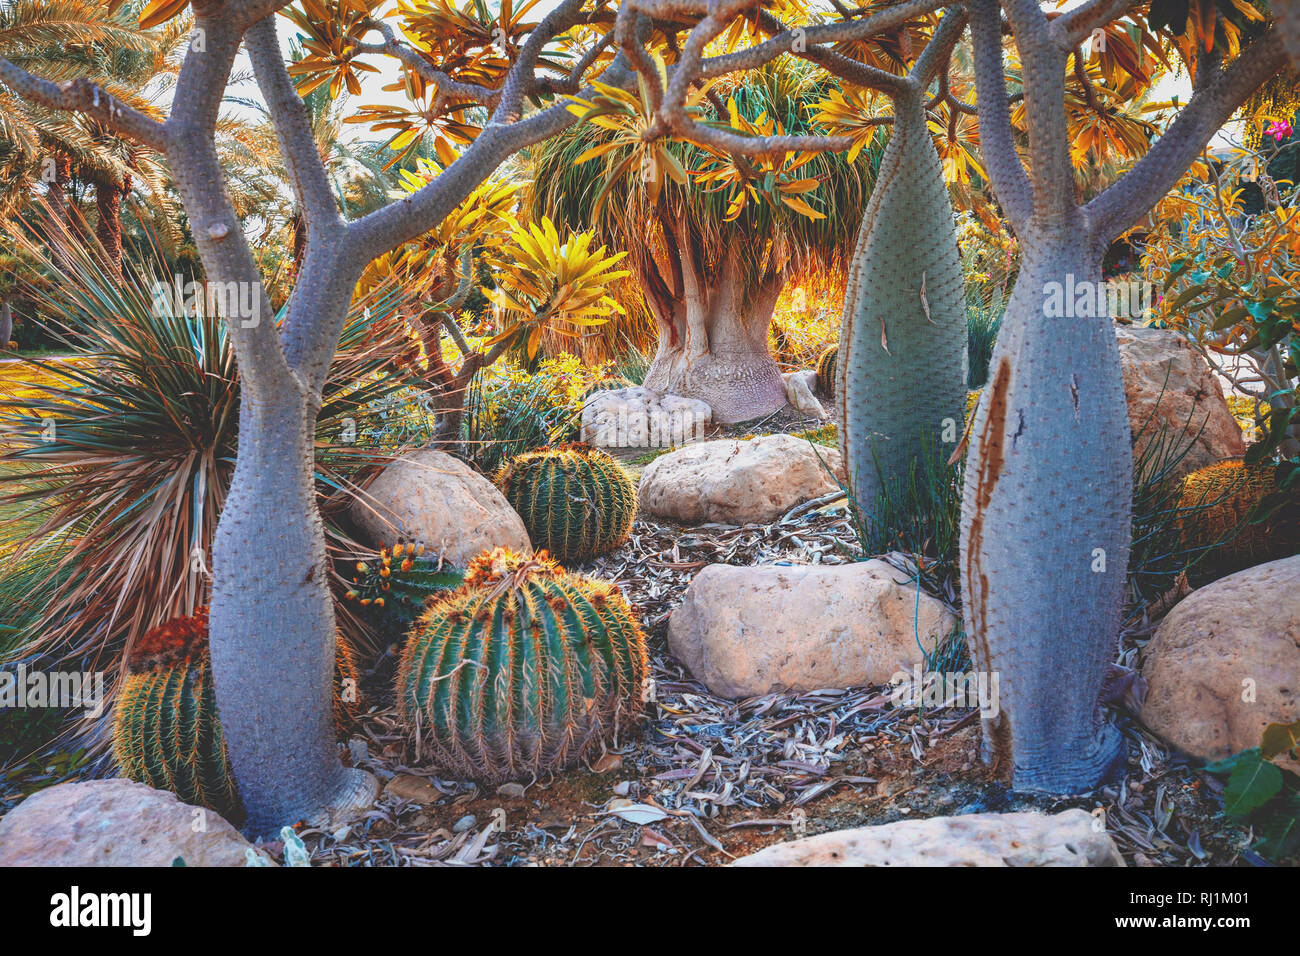 Pachypodium grove (madagascar palms) - Stock Image